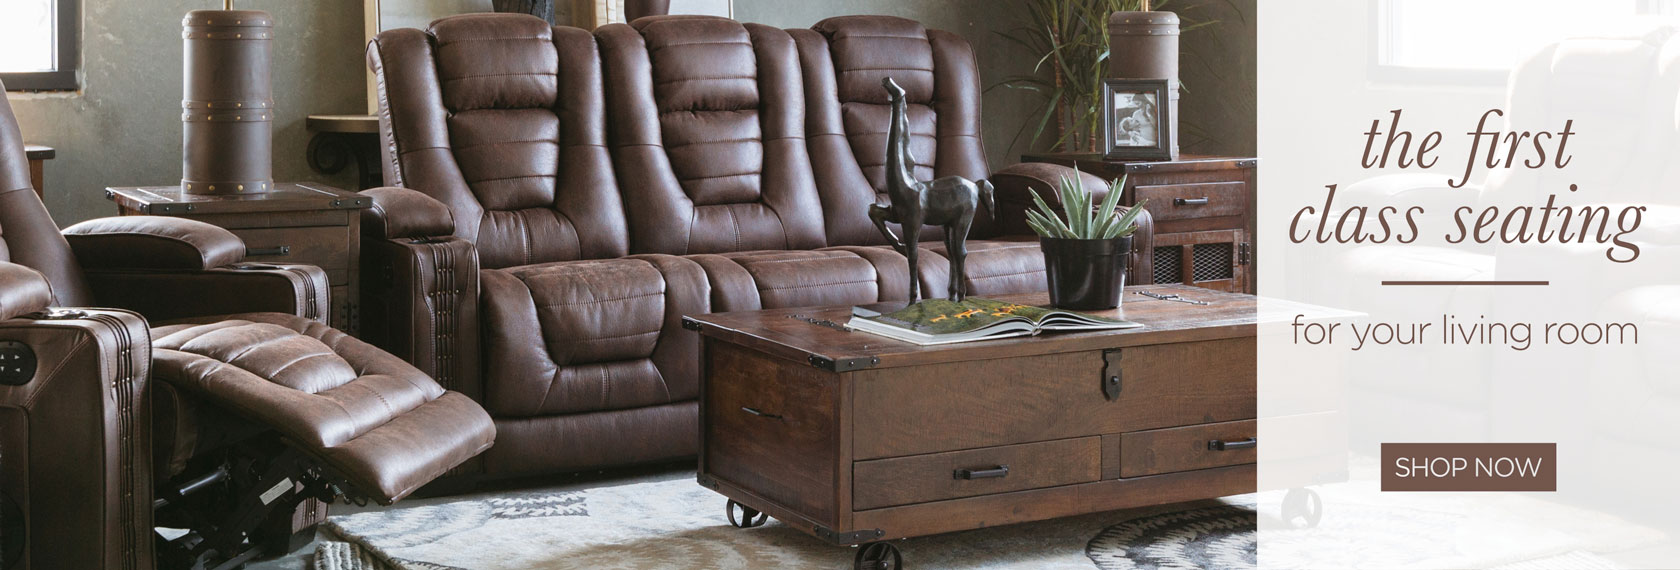 Mathis Brothers Furniture Stores In Oklahoma City Okc